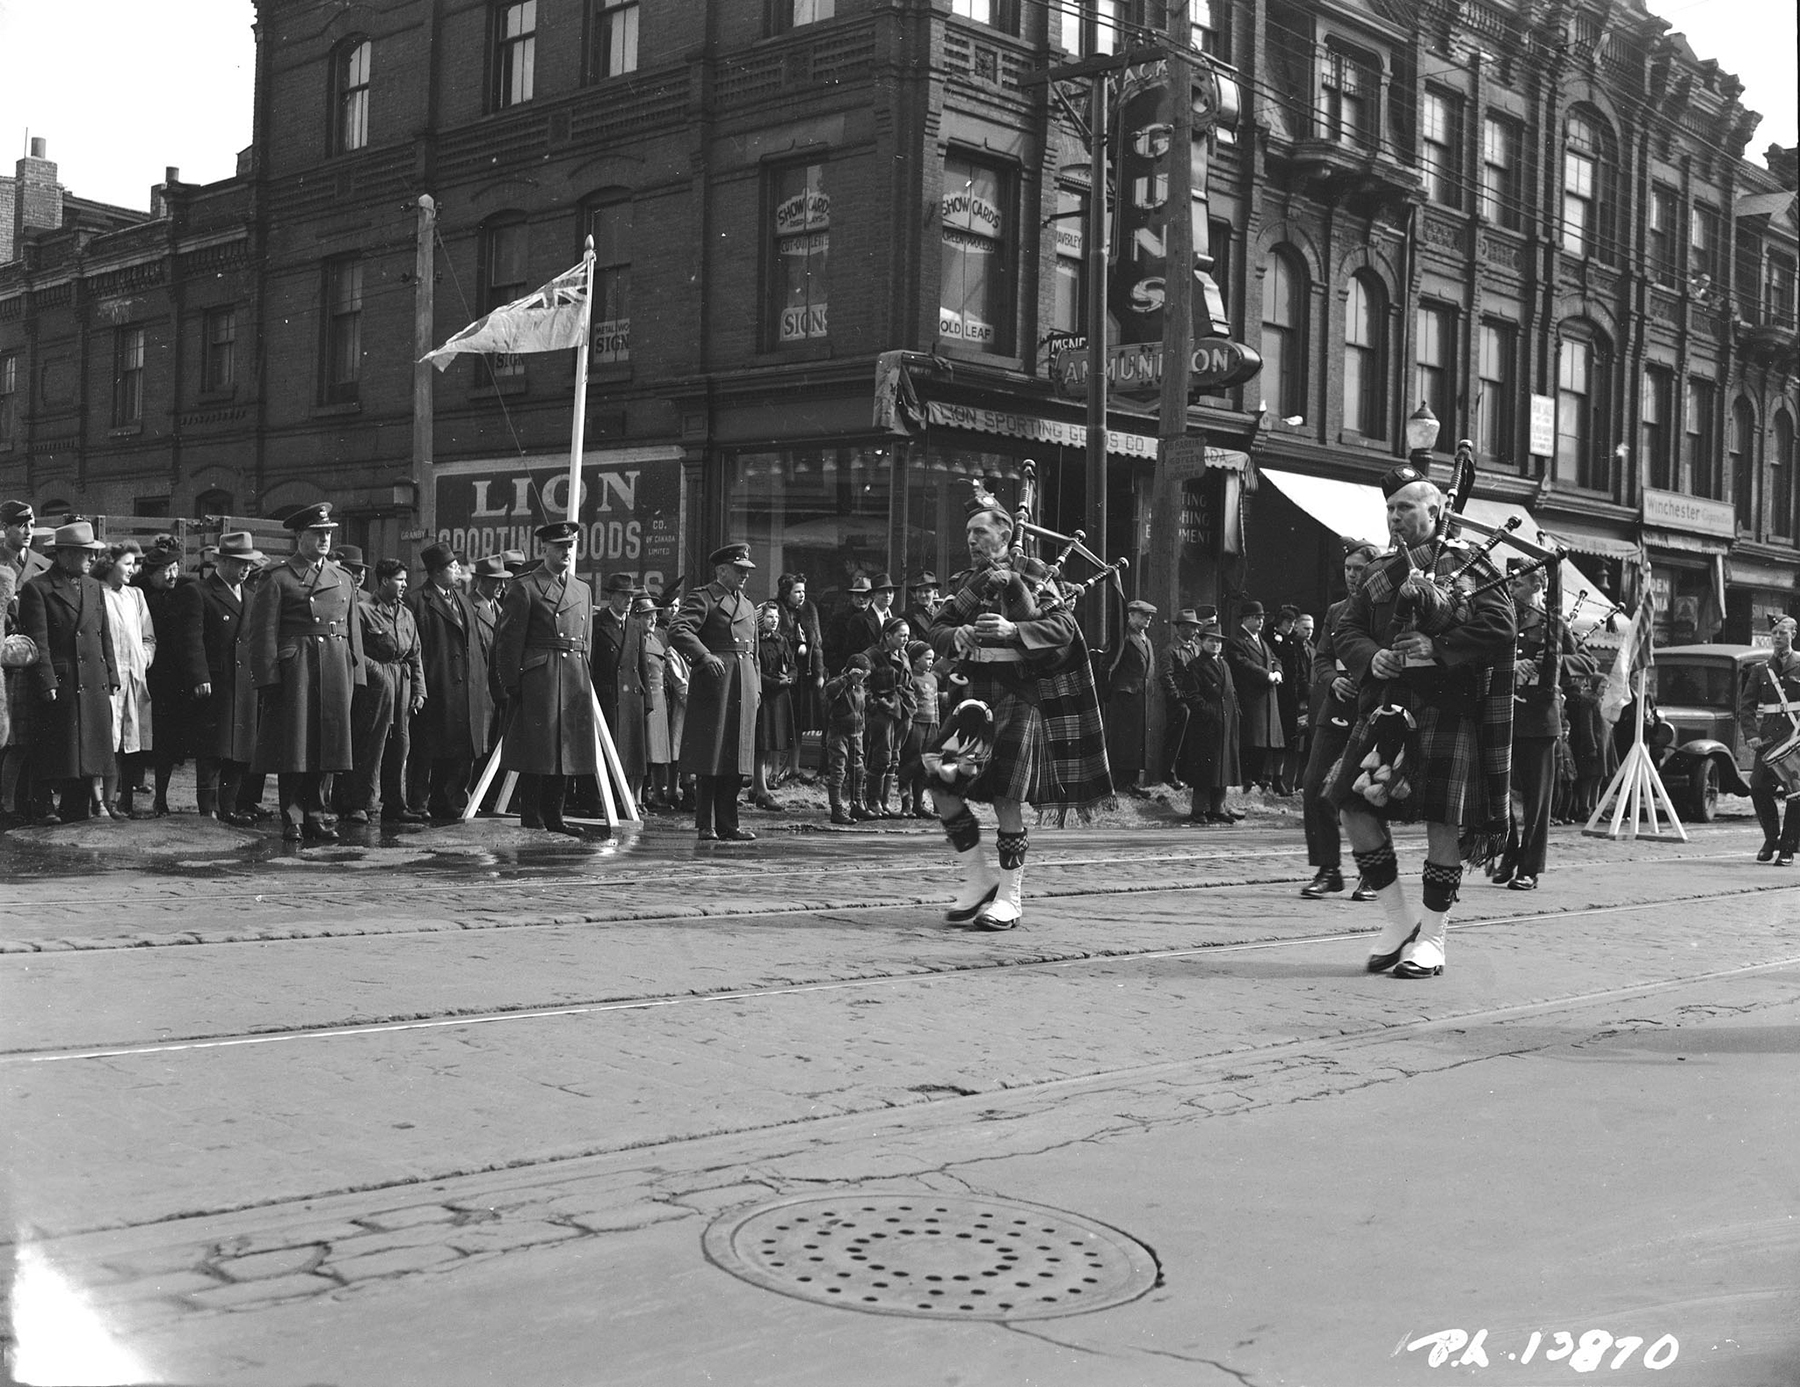 In full RCAF tartan regalia, the No. 9 Service Flying Training School Pipe Band from Centralia, Ontario, parades past Air Commodore G.E. Wait as he takes the salute on March 13, 1943, in Toronto, Ontario. The band was leading Royal Canadian Air Force airmen from Toronto`s No. 1 Manning Depot to Maple Leaf Gardens for a hockey playoff game between the Air Force and a team representing the Royal Canadian Navy. PHOTO: DND Archives, PL-13870